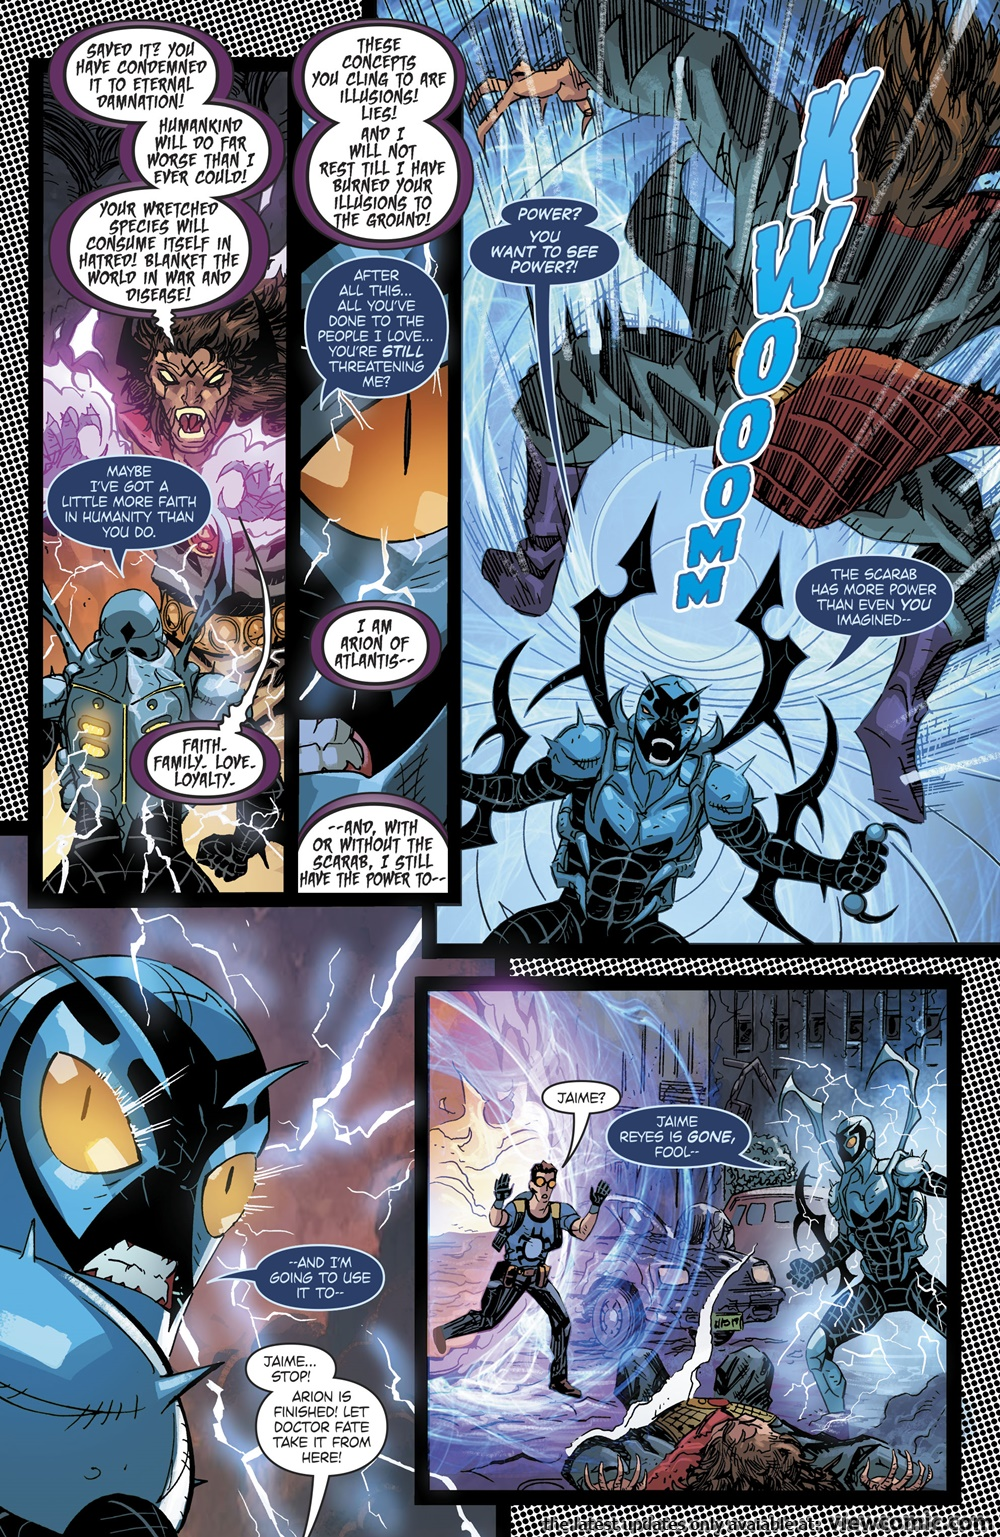 Blue Beetle v8 010 (2017) . | Vietcomic.net reading comics online for free